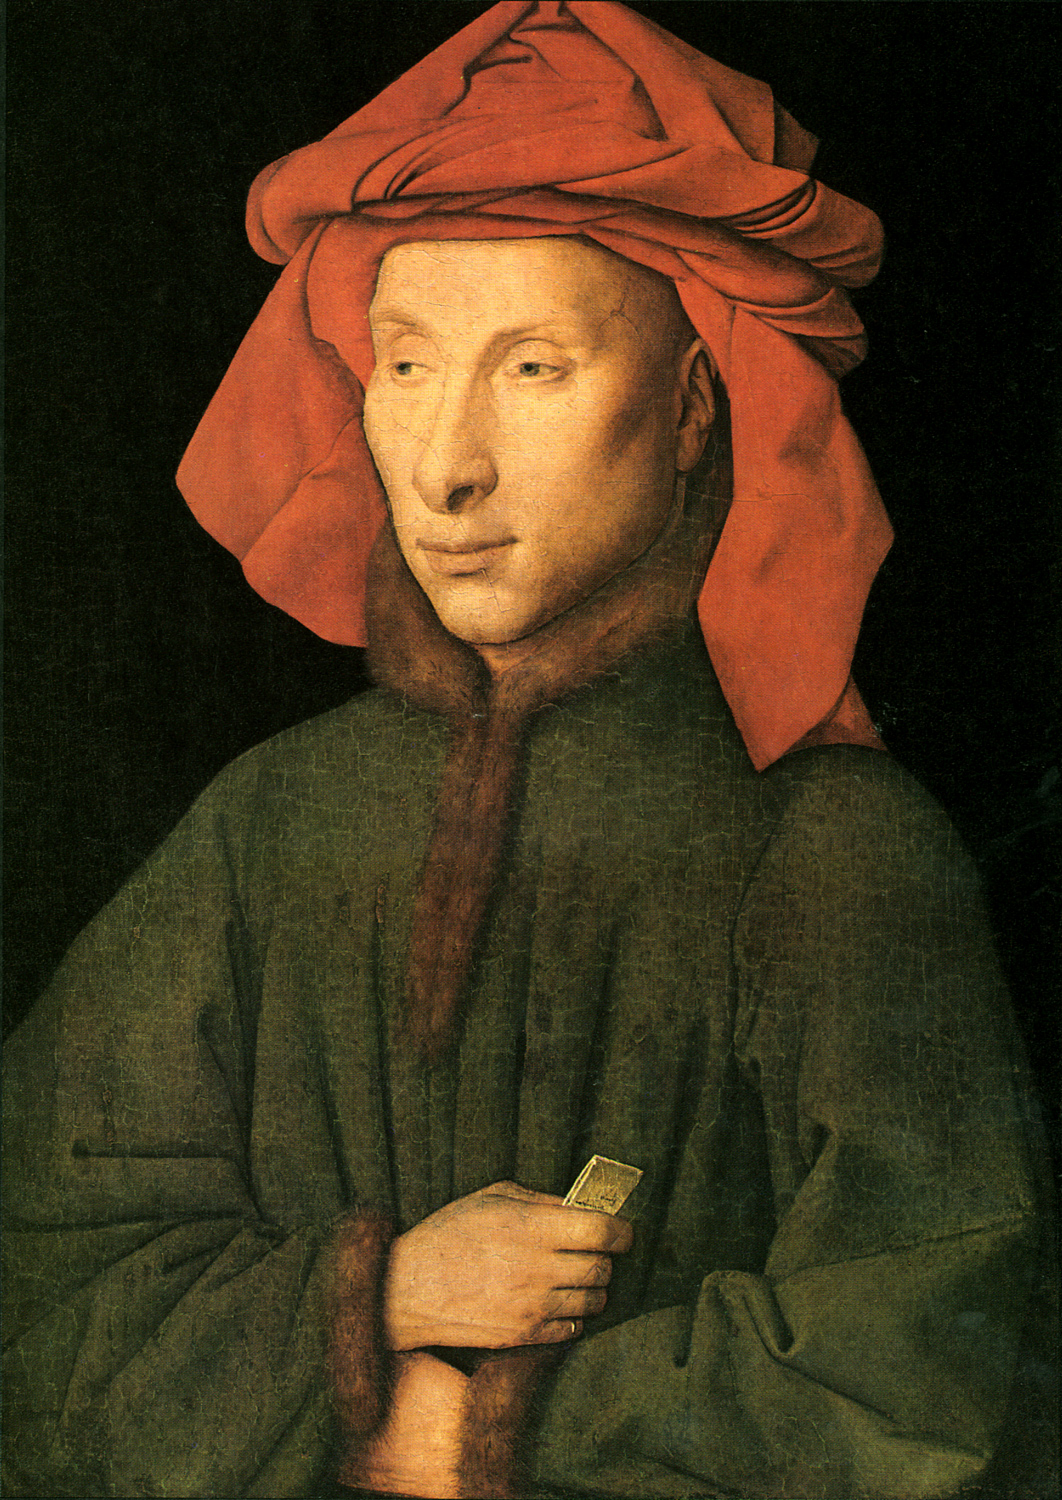 https://upload.wikimedia.org/wikipedia/commons/c/cf/Jan_van_Eyck_088.jpg